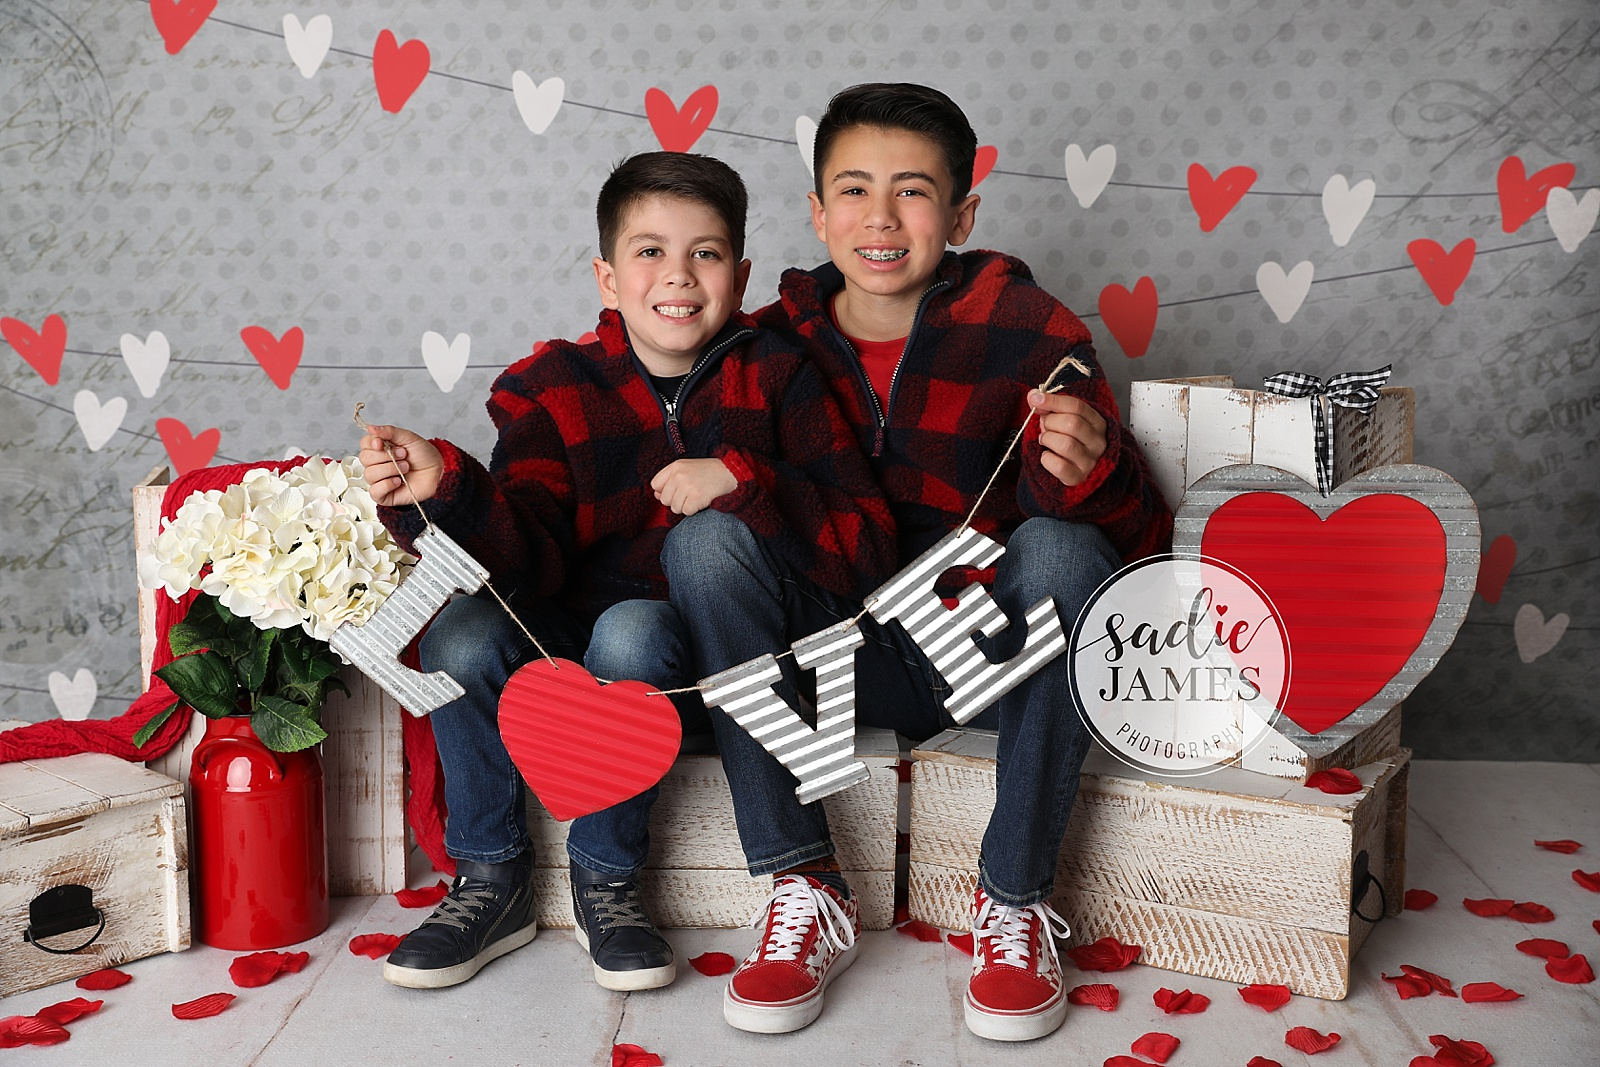 Sadie James Photography | CA family photographer | Orange County CA family photographer | Orange County family photographer | California family photographer | California family photographer | Valentine's Day Mini sessions | Valentine's Day, heart day, valentine's day minis